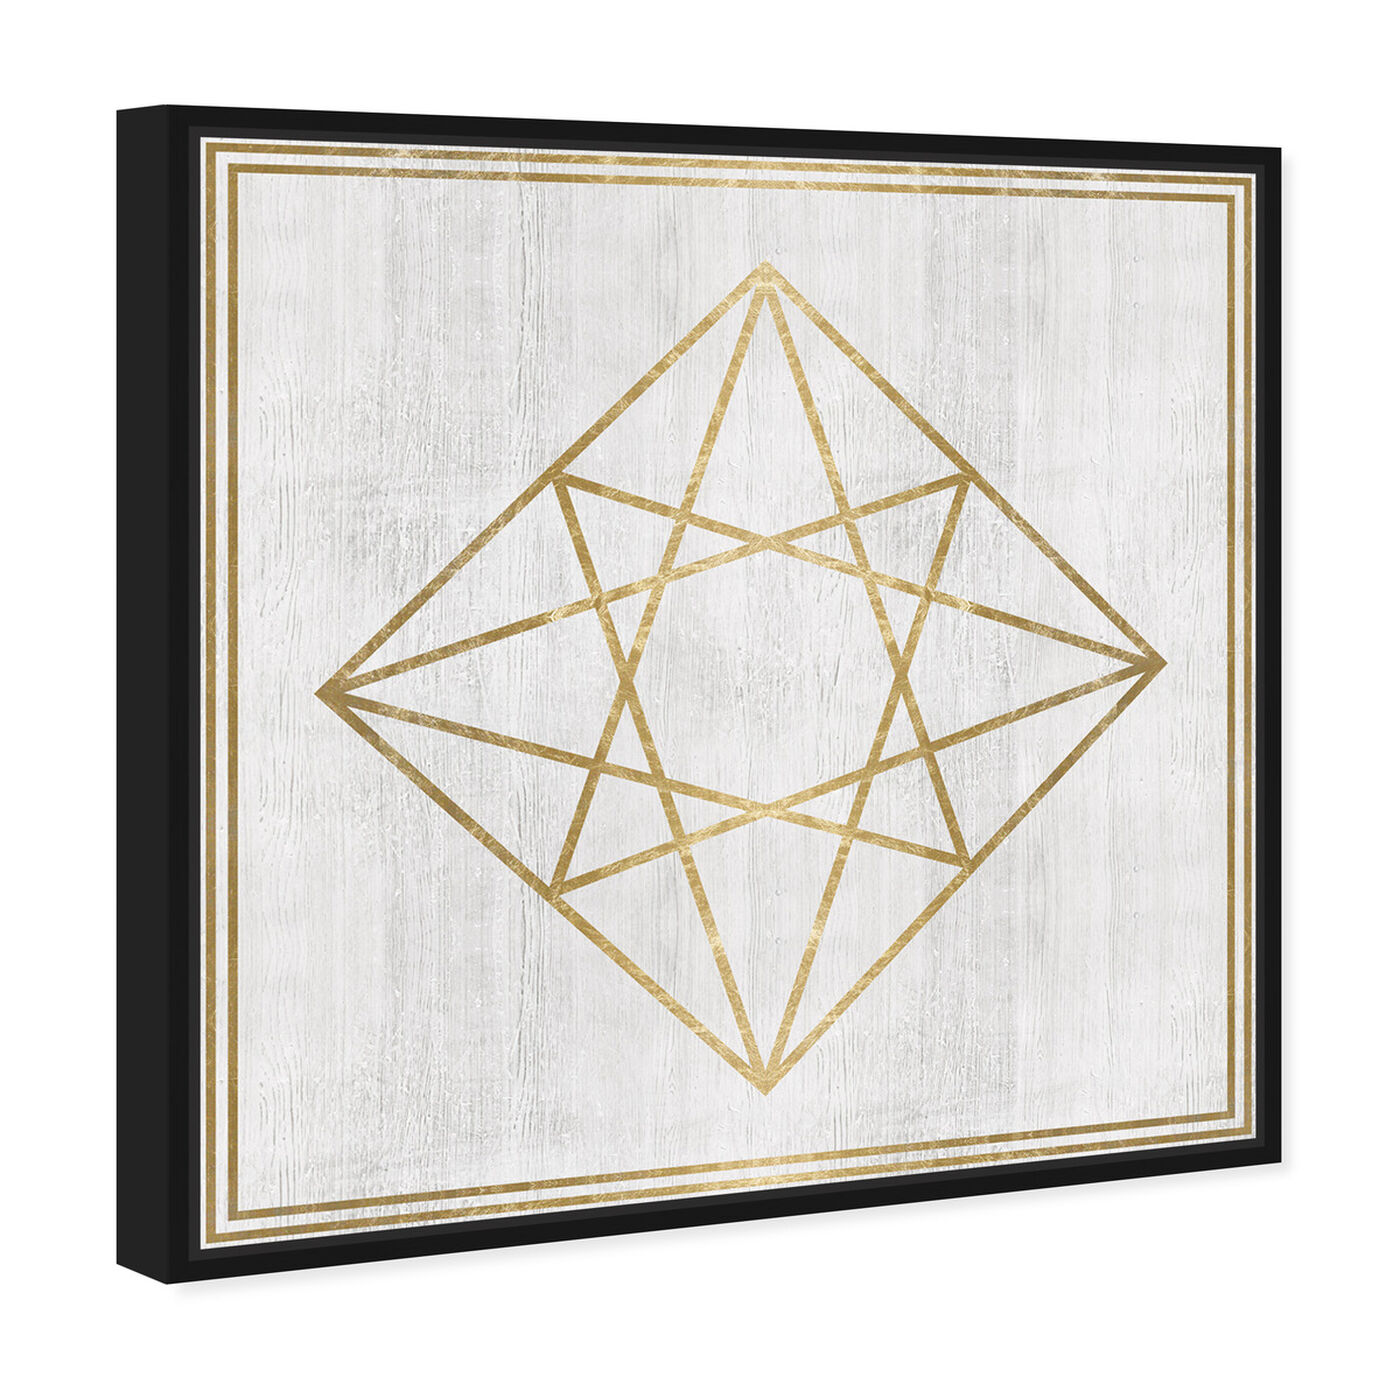 Angled view of Whitewash Wood Geometric Diamond featuring abstract and geometric art.